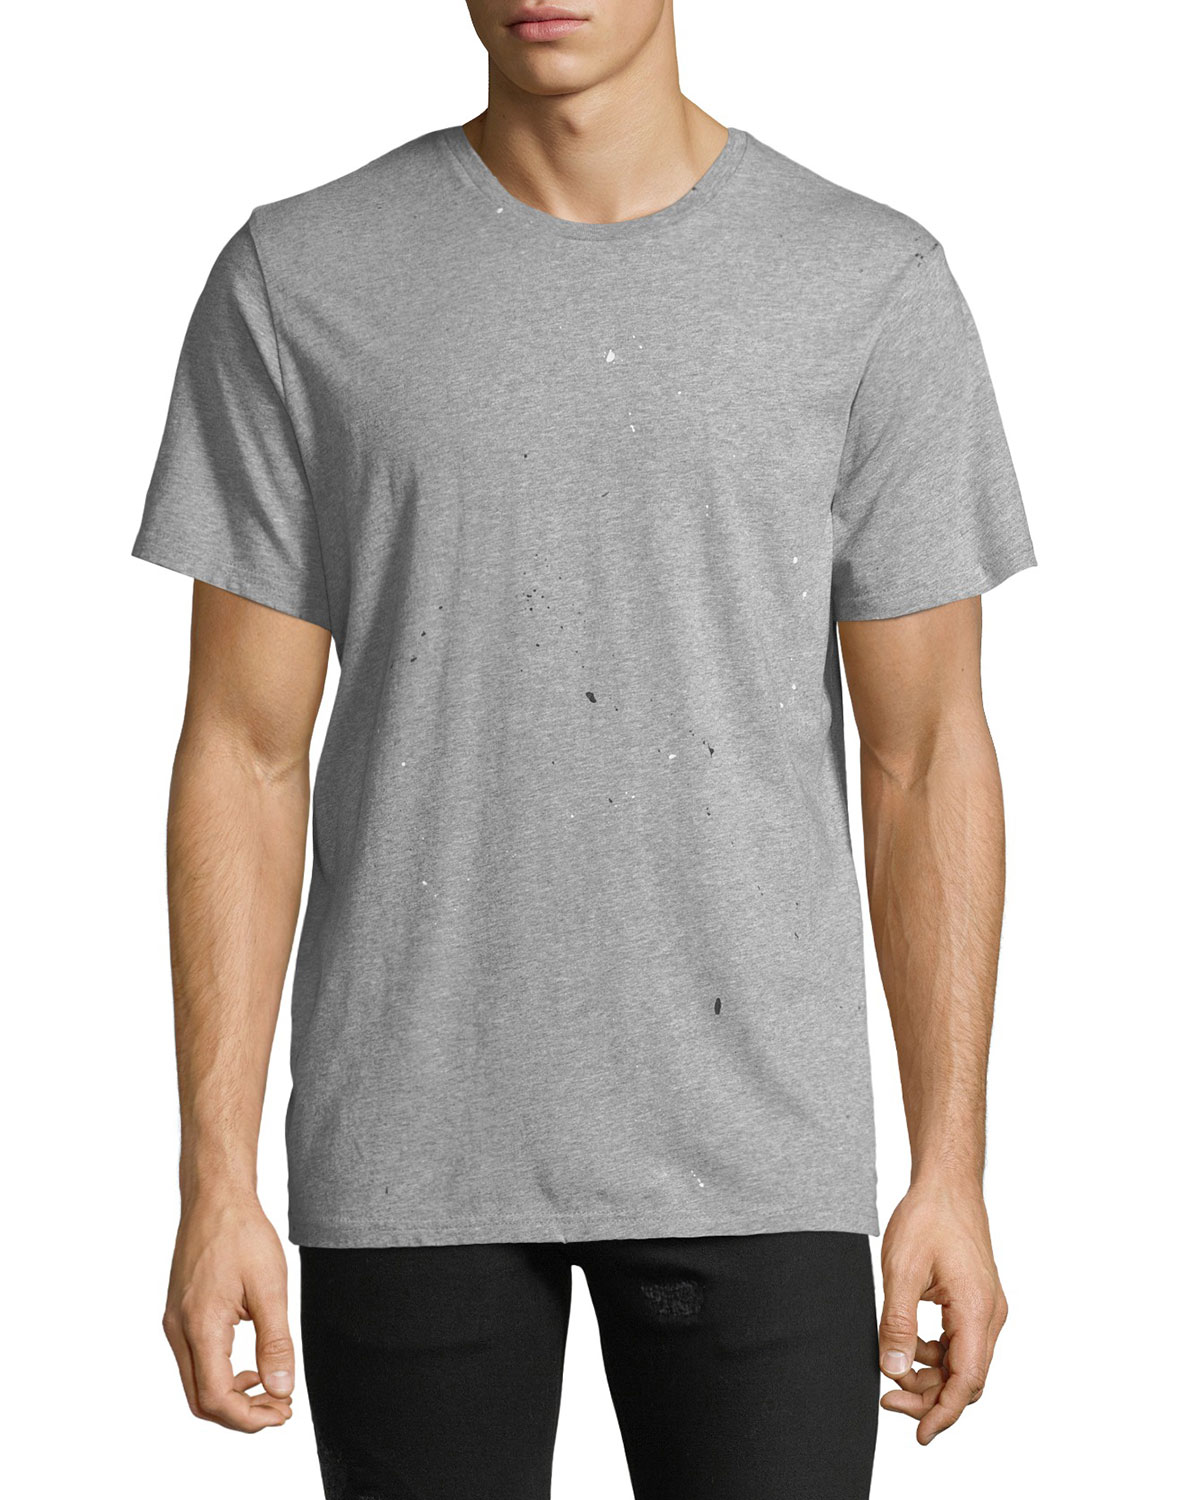 Men's Splattered Crewneck T-Shirt